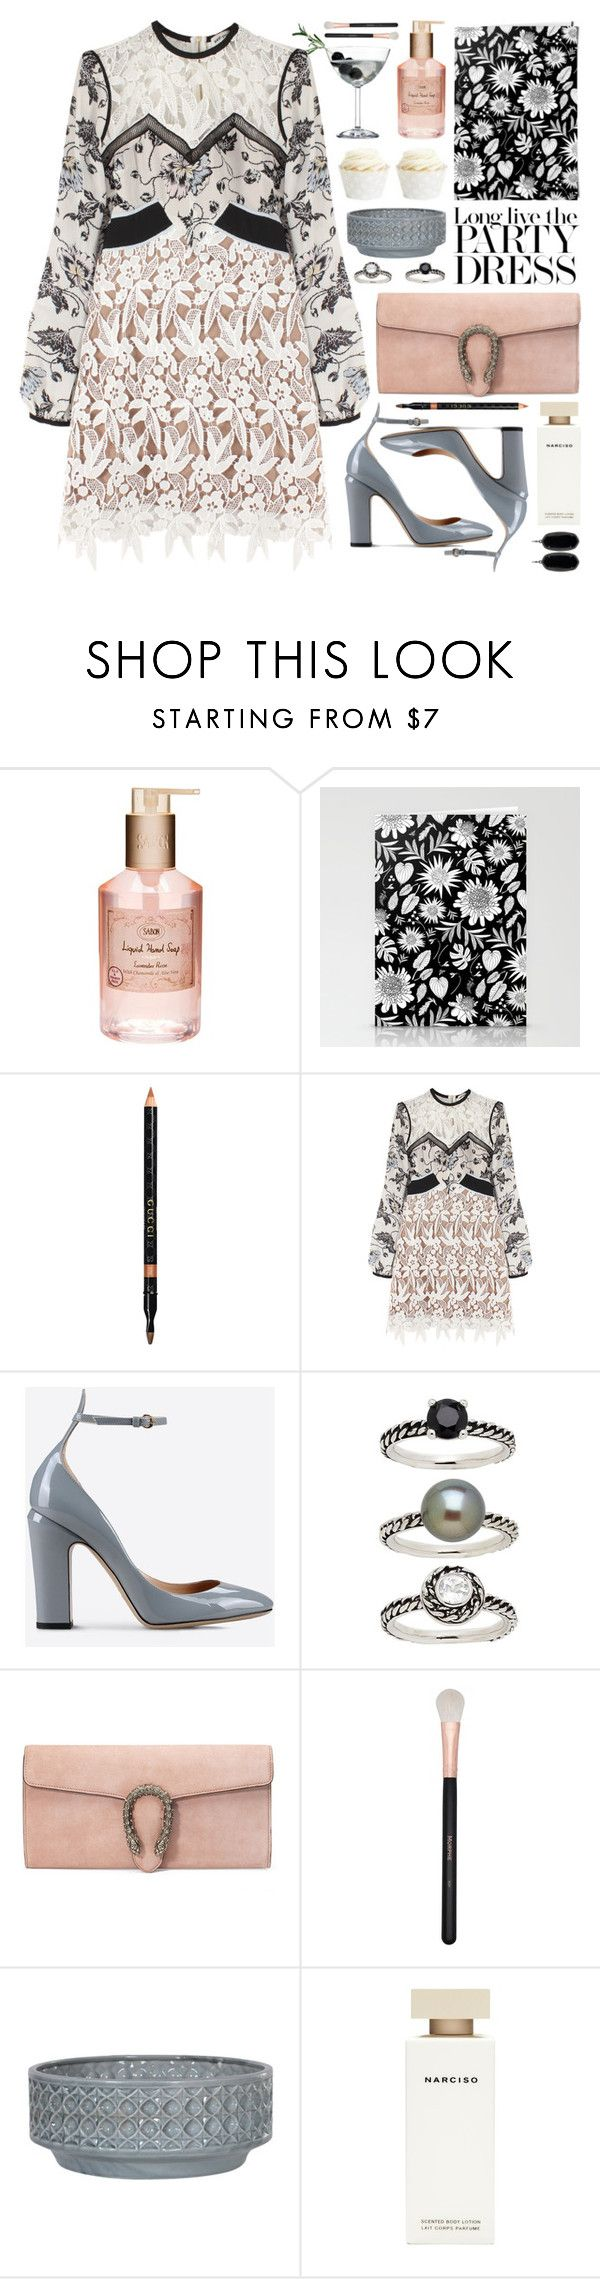 """""""party on: long sleeve dresses"""" by jesuisunlapin ❤ liked on Polyvore featuring Olive, Victoria Beckham, Gucci, self-portrait, Valentino, Honora, Morphe, Narciso Rodriguez, Kendra Scott and party"""